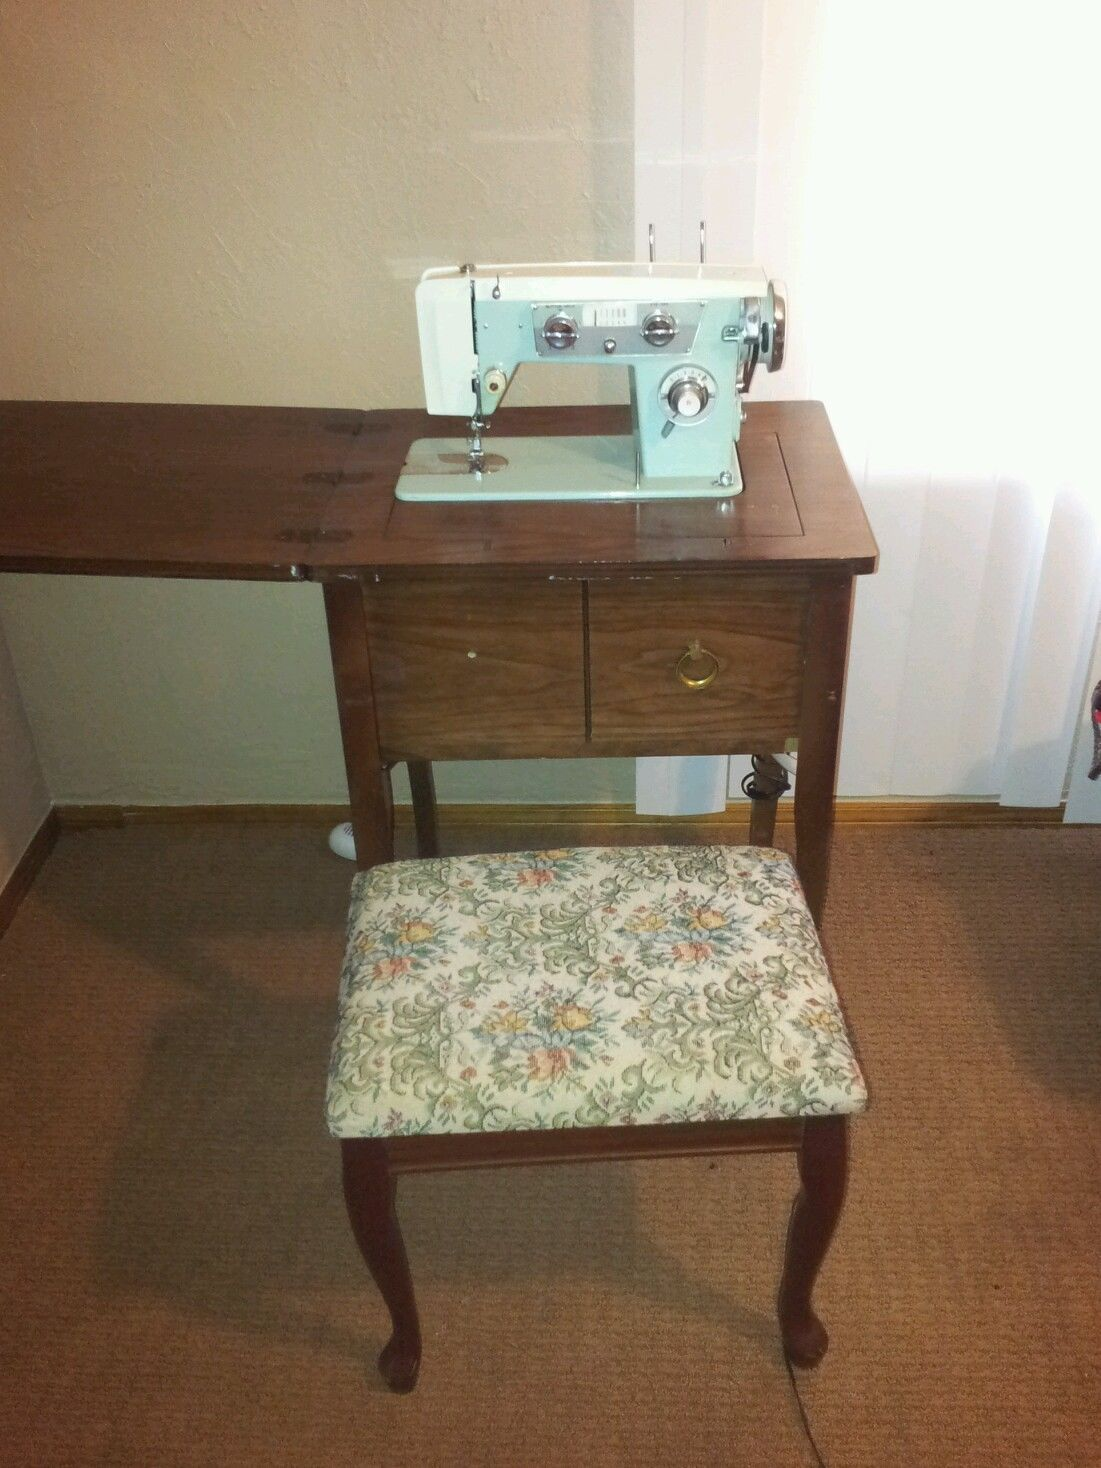 Exceptionnel Zig Zag Sewing Machine In Vintage Wood Table